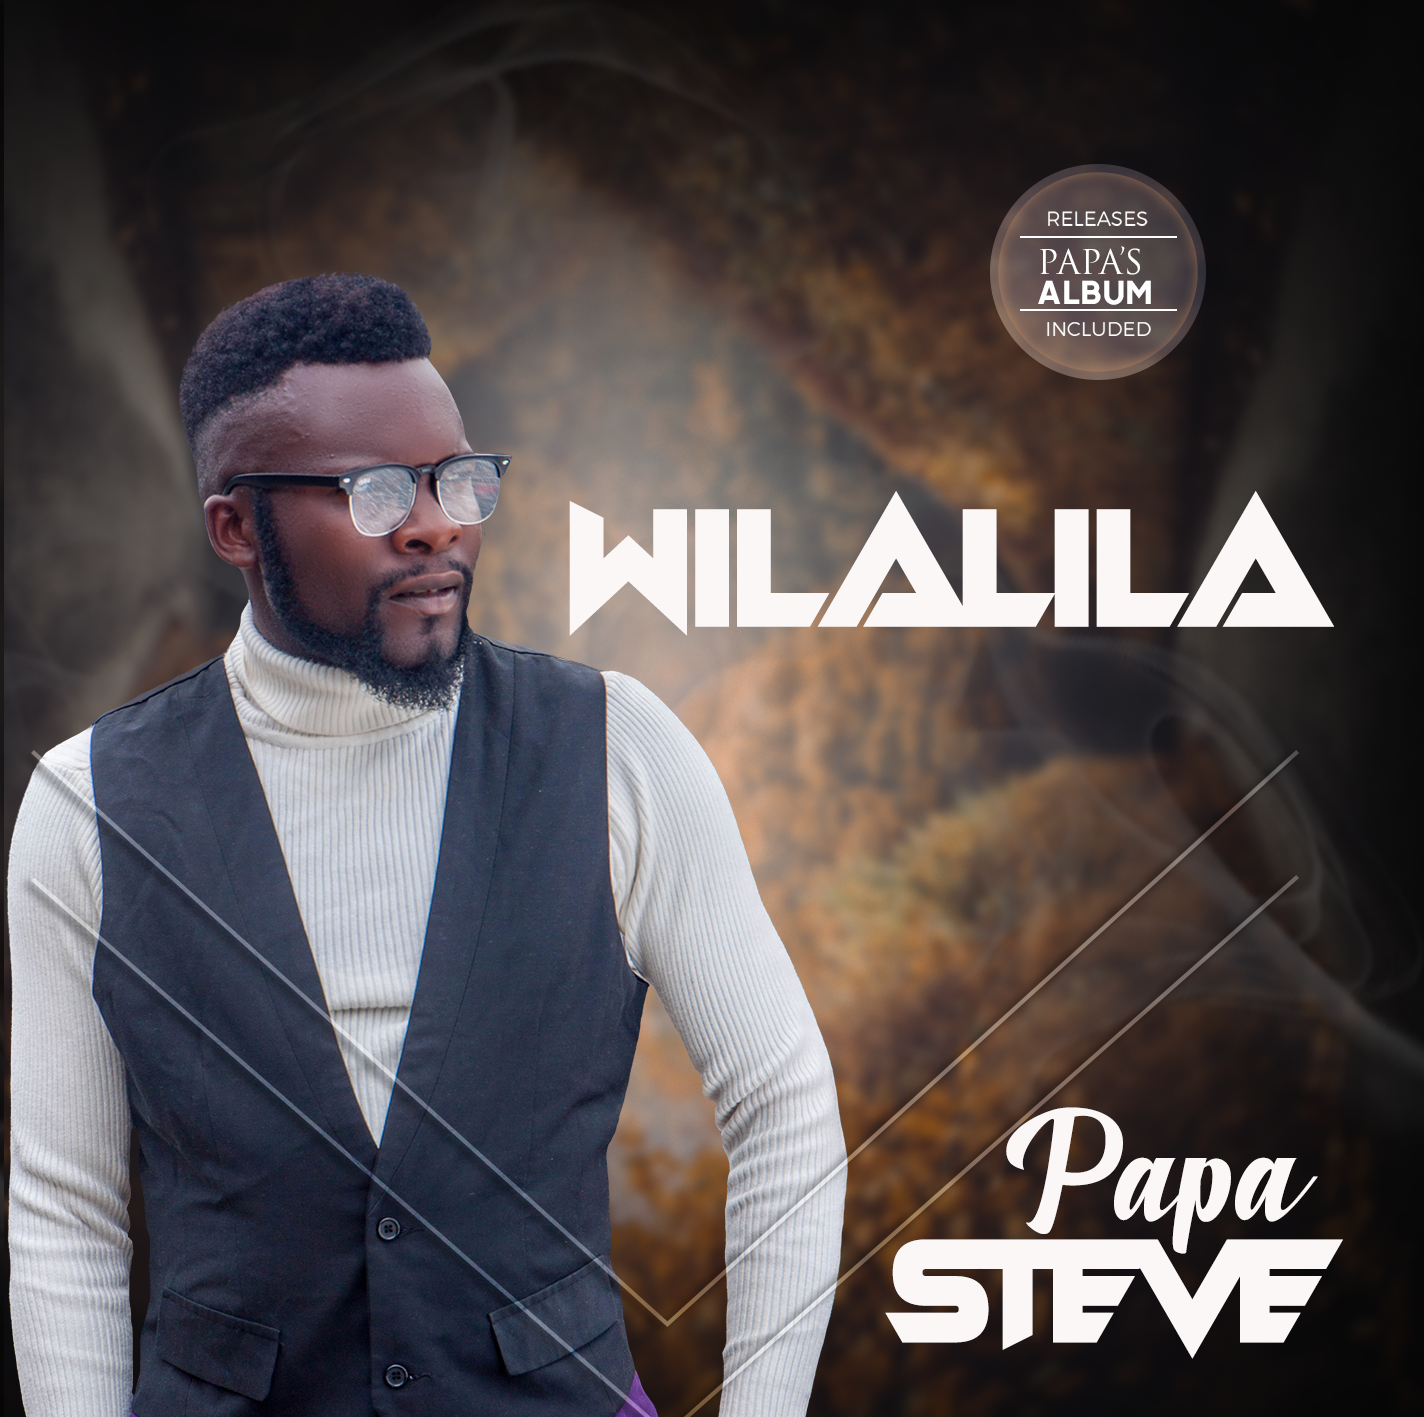 Papa Steve Drops New Album 'Wilalila' + 2 New Singles